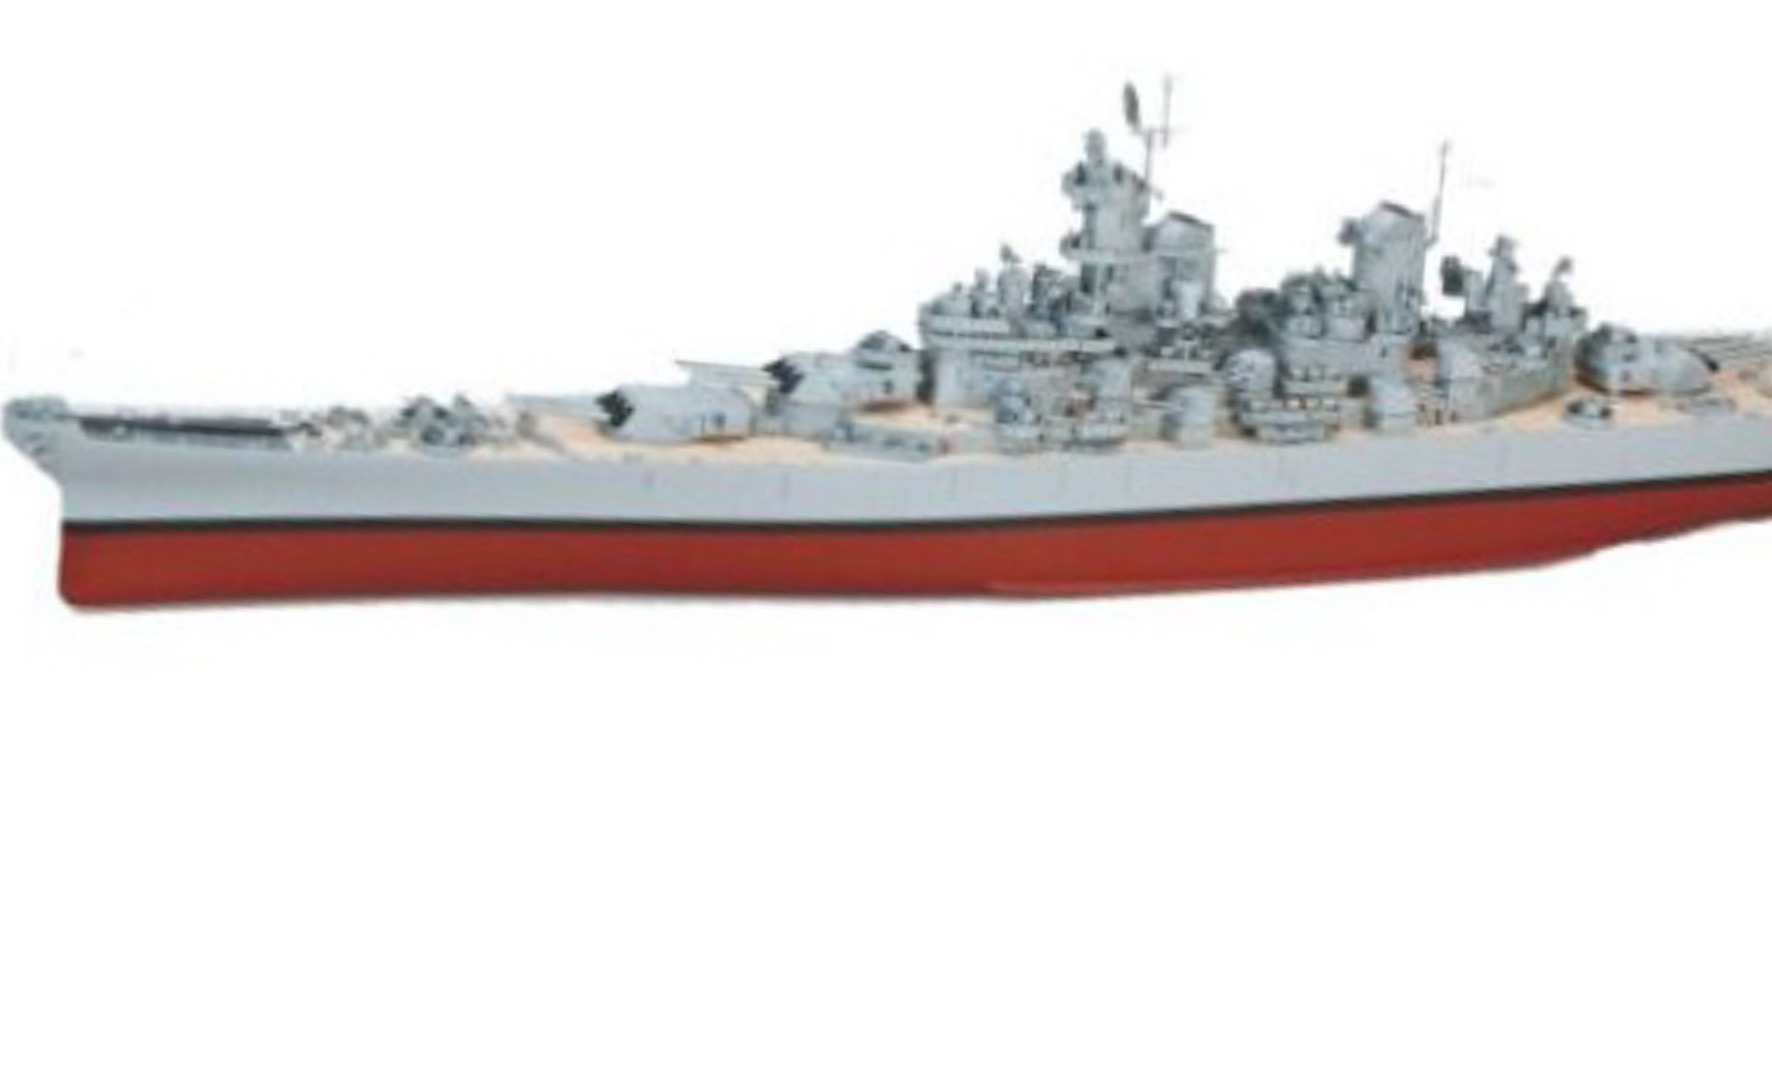 GIANT 71 INCHES IN LENGTH – RC USS MISSOURI BATTLESHIP – READY TO RUN